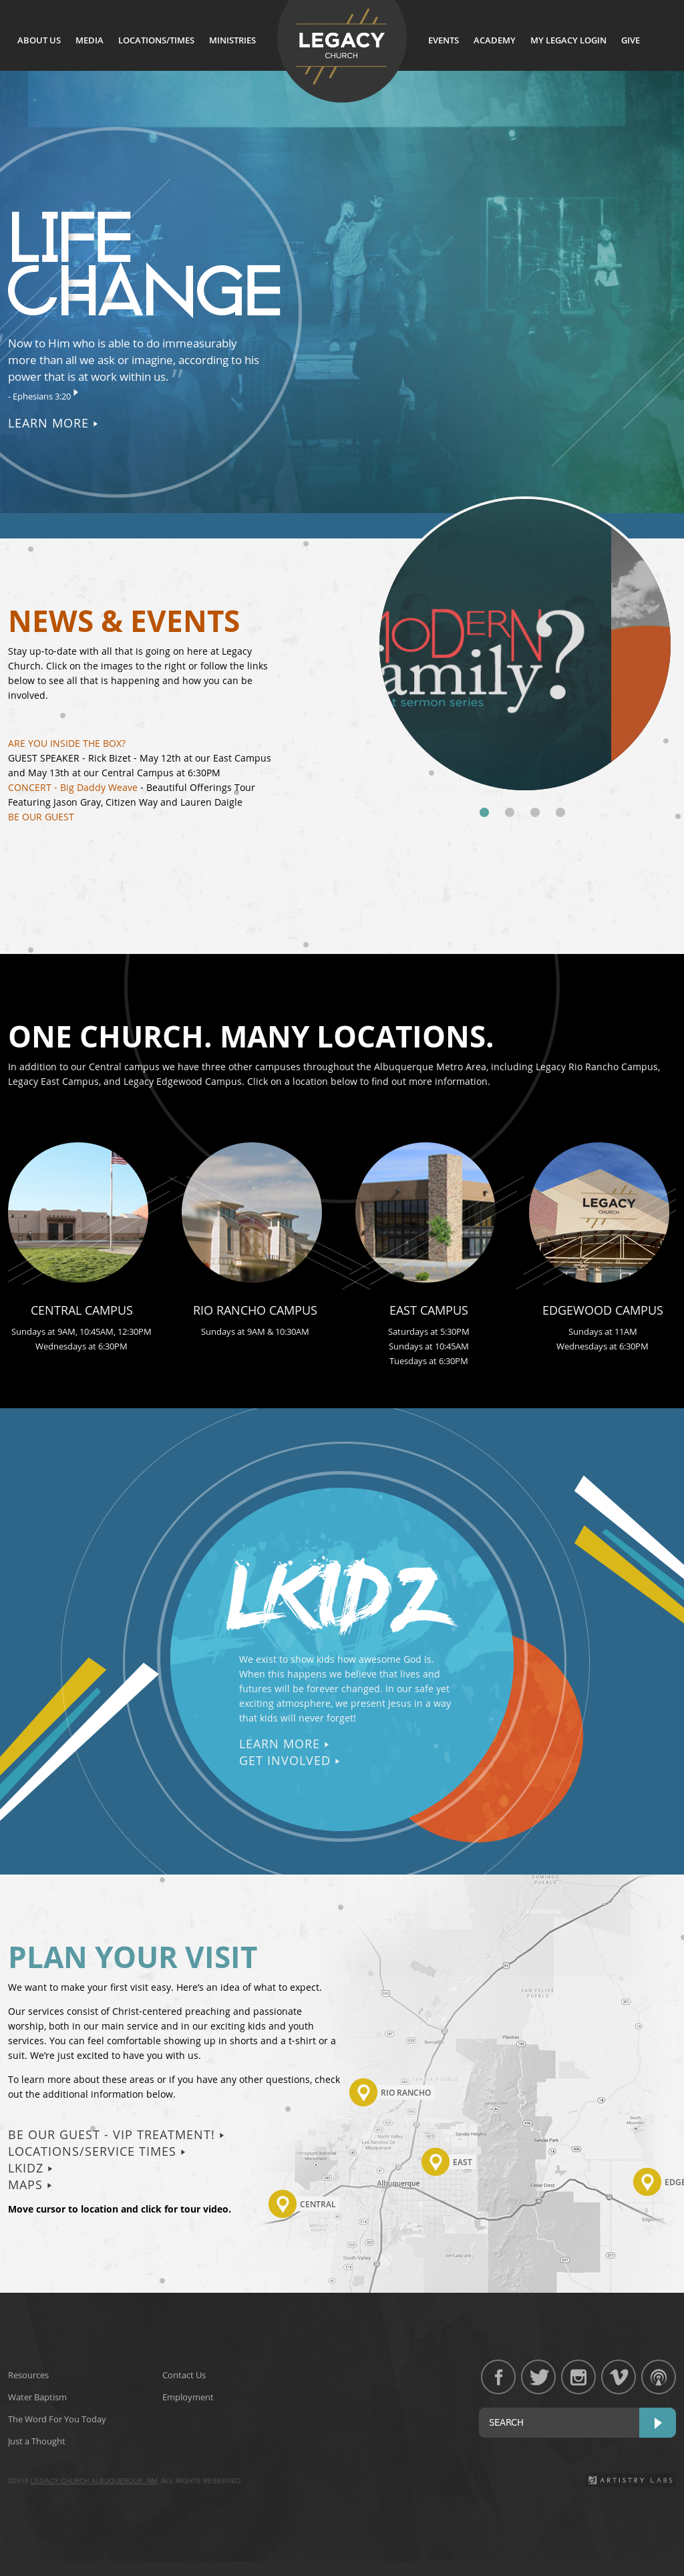 Albuquerque Academy Campus Map.Legacychurchnm Competitors Revenue And Employees Owler Company